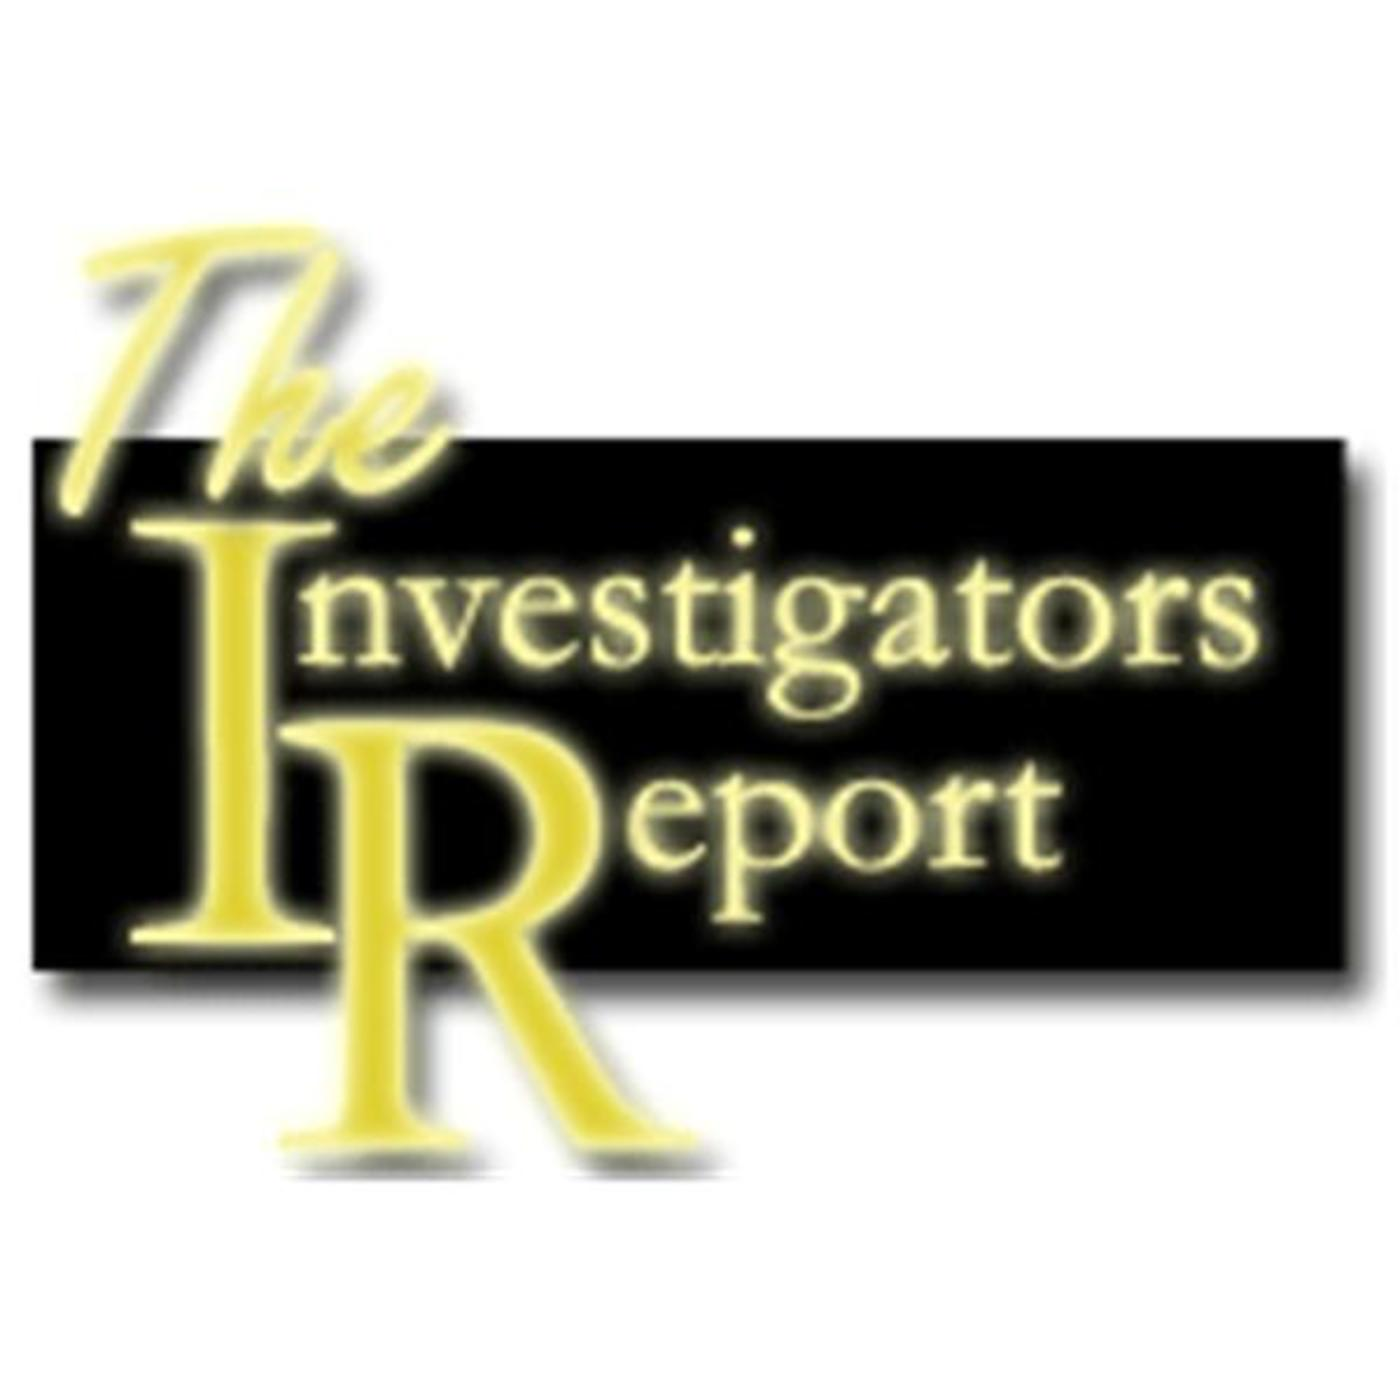 The Investigators Report